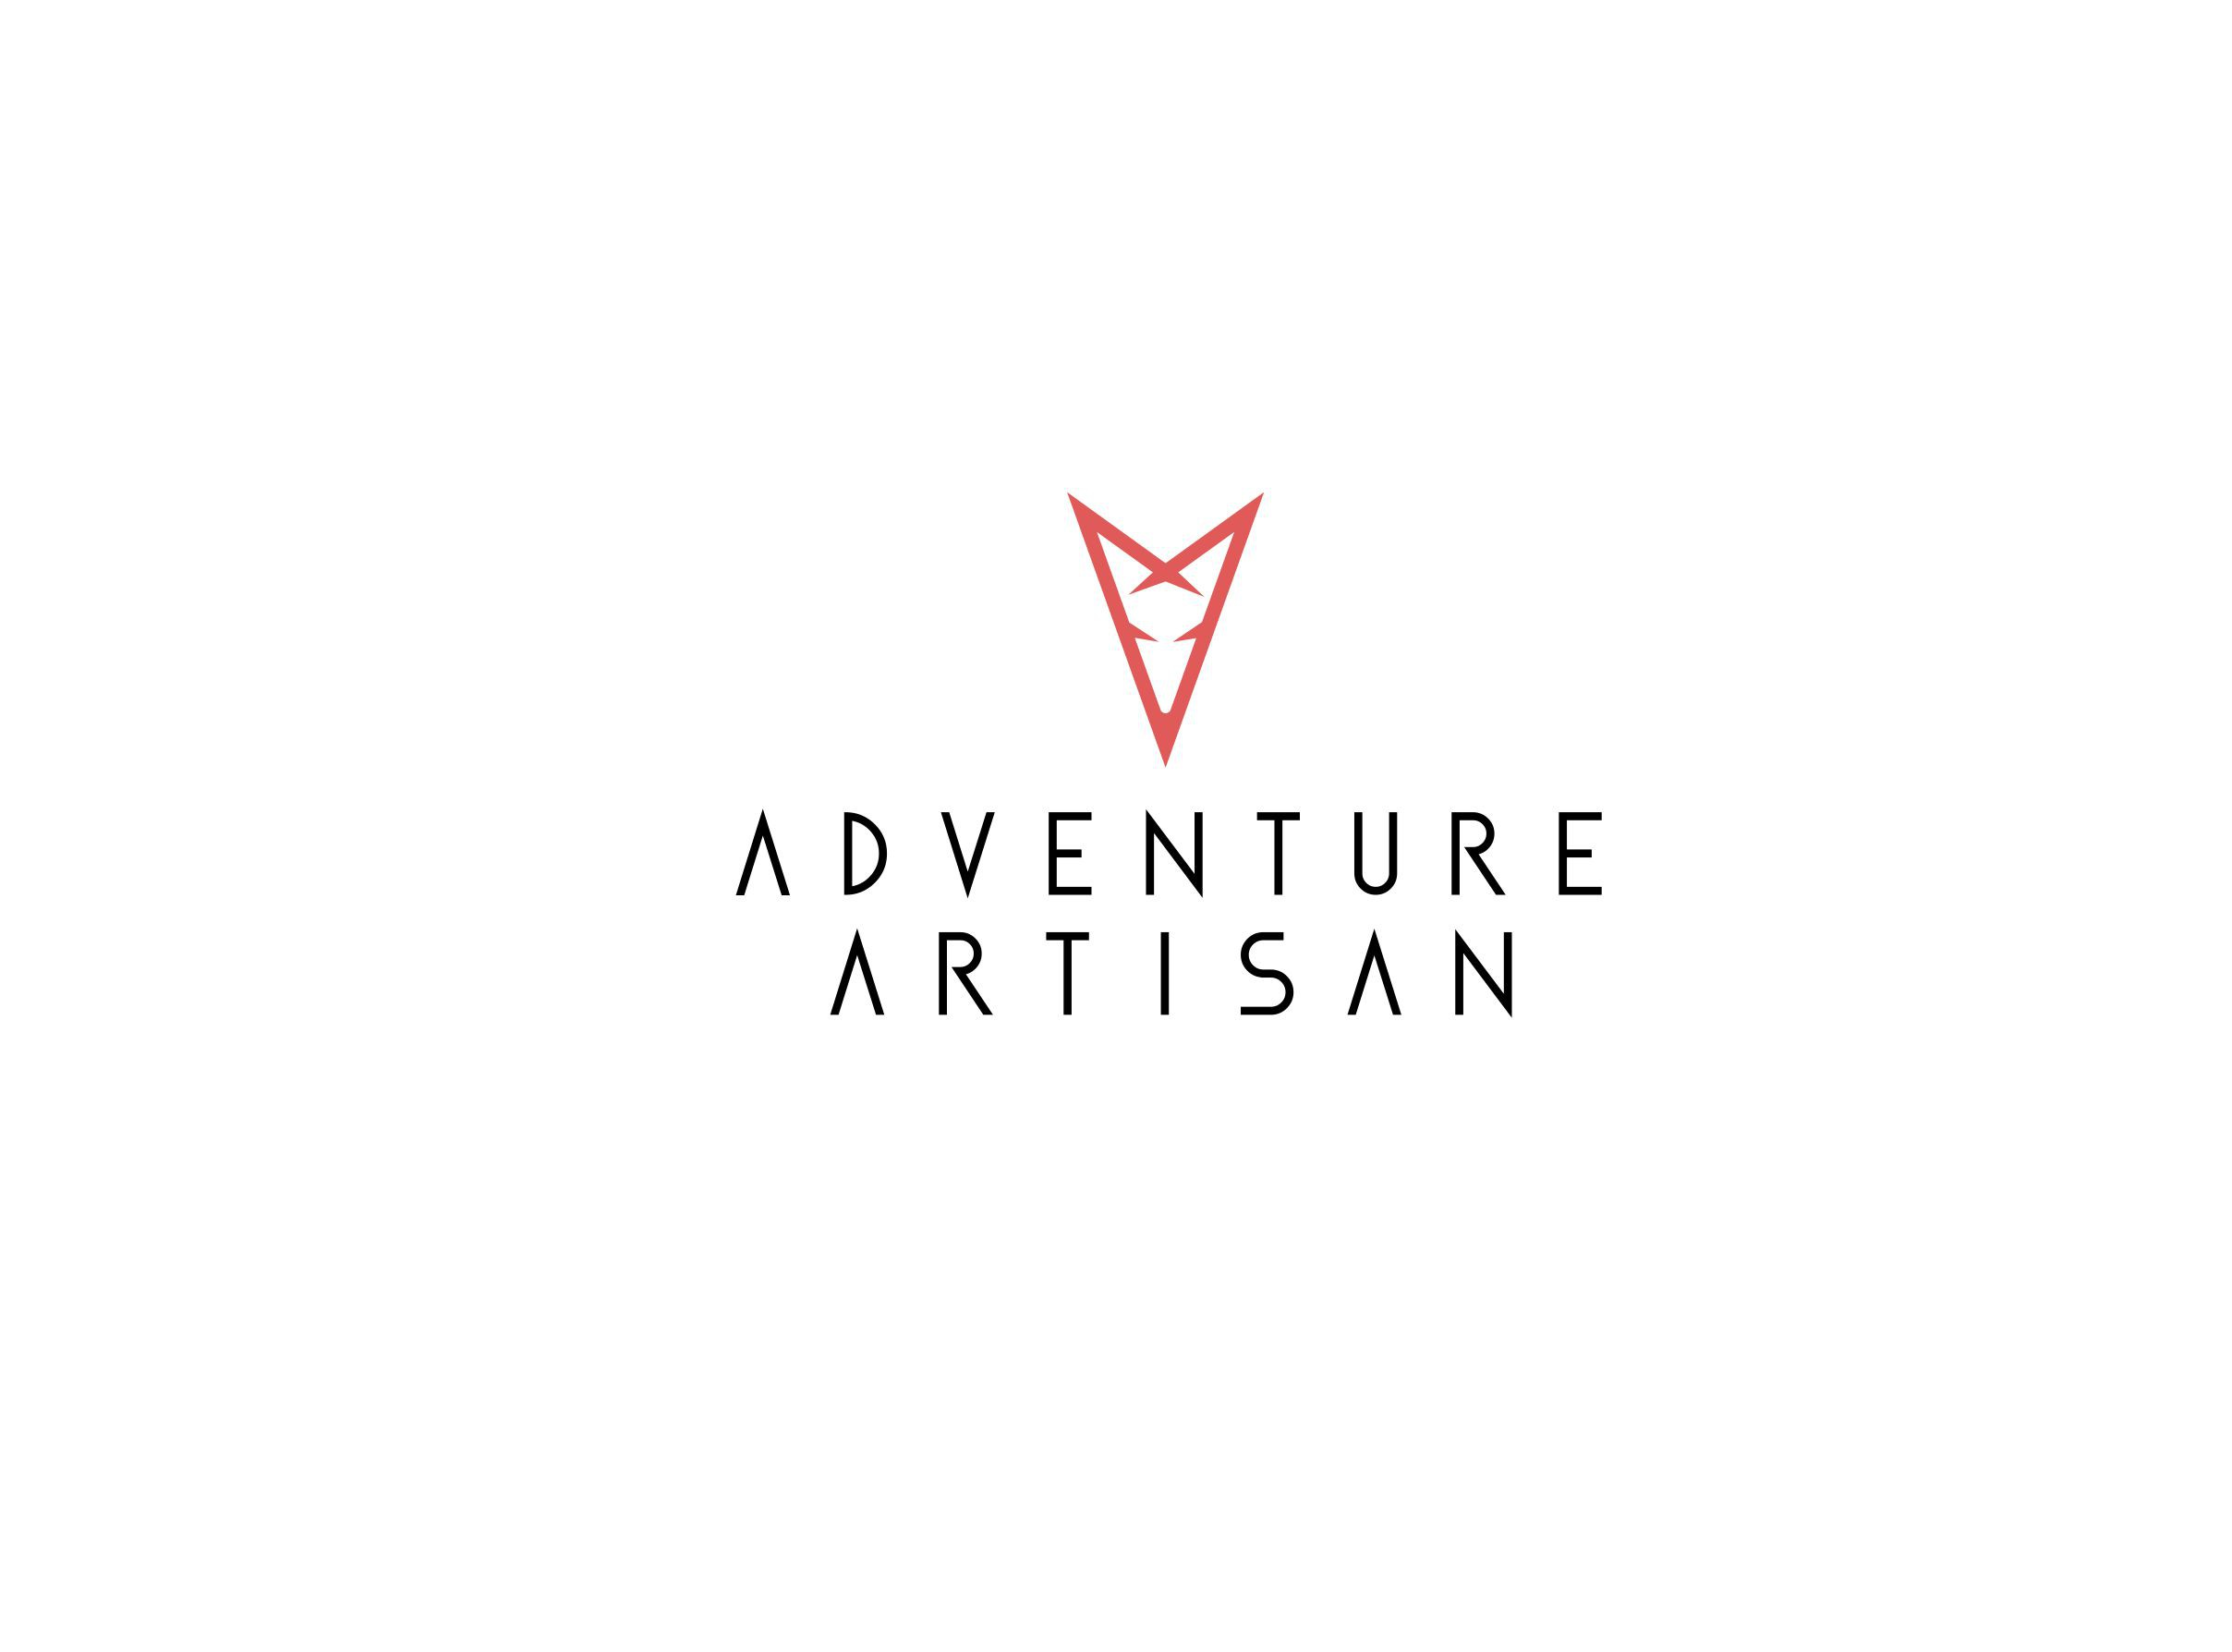 Adventure Artisan | Simple, Powerful and Adventurous Logo needed